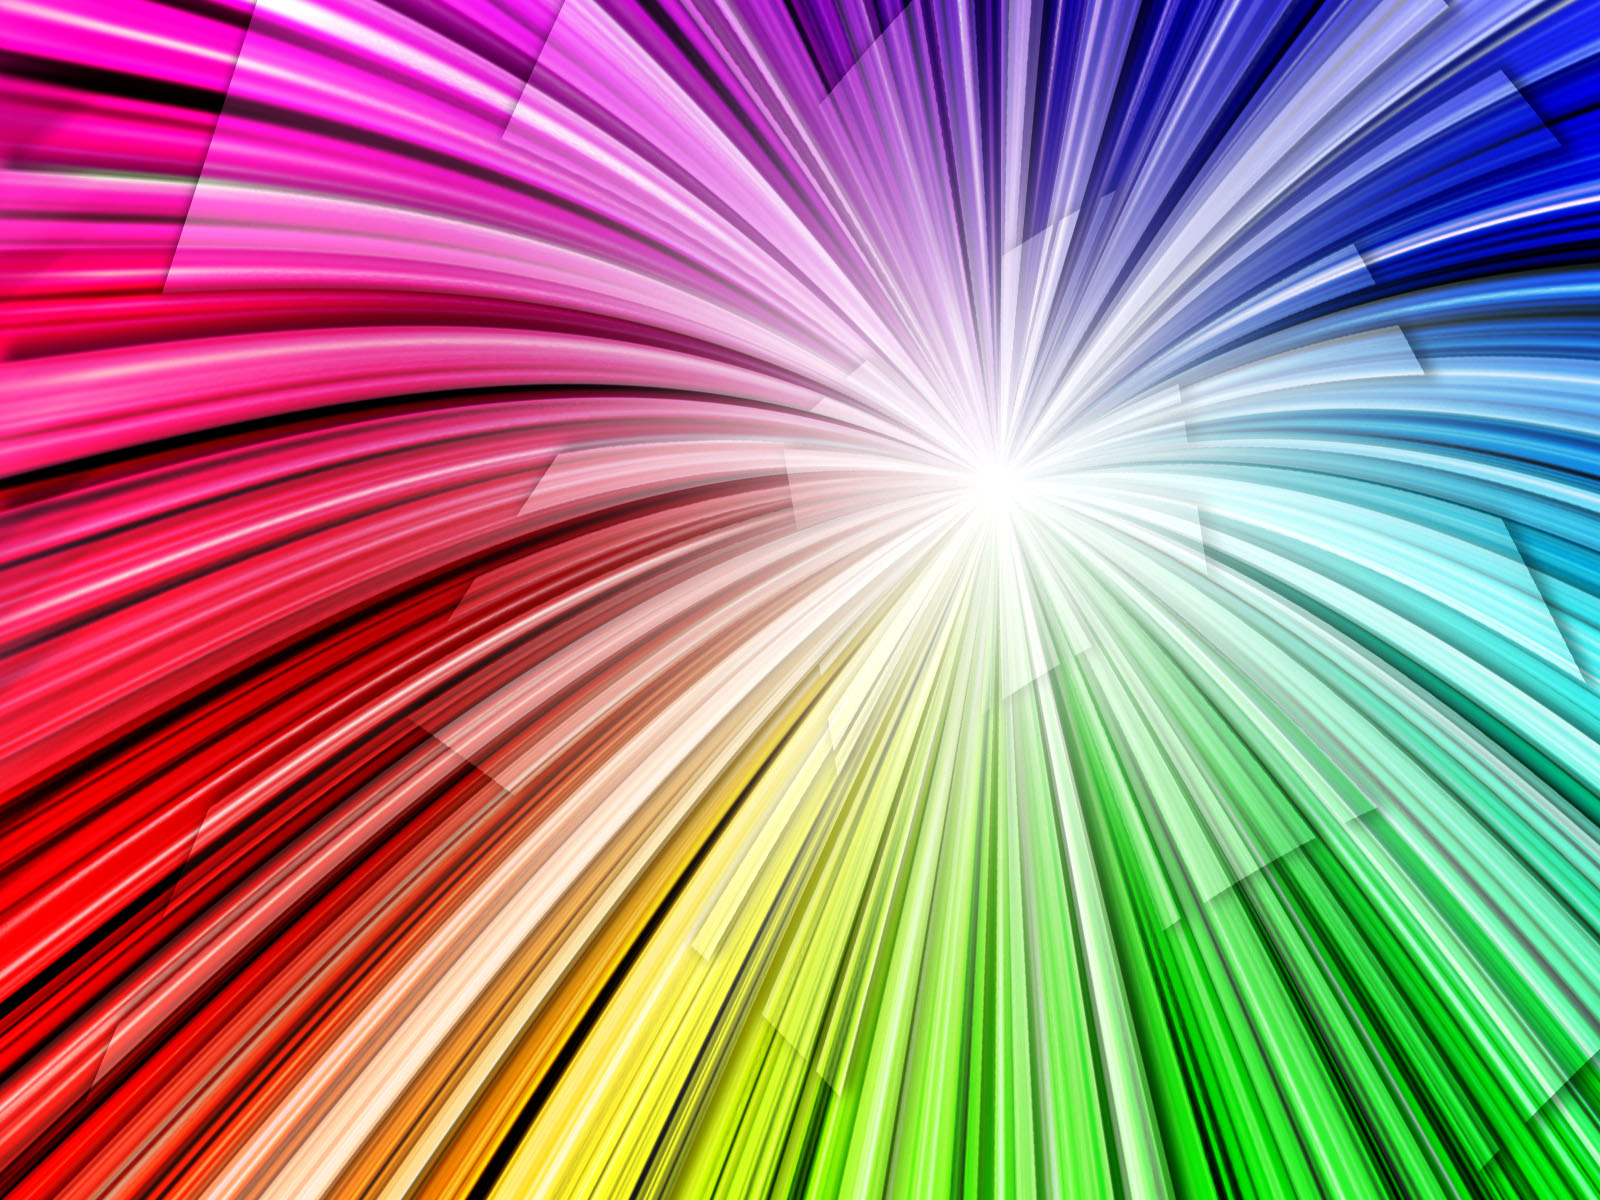 Rainbow Wallpaper: Top Quality Wallpapers